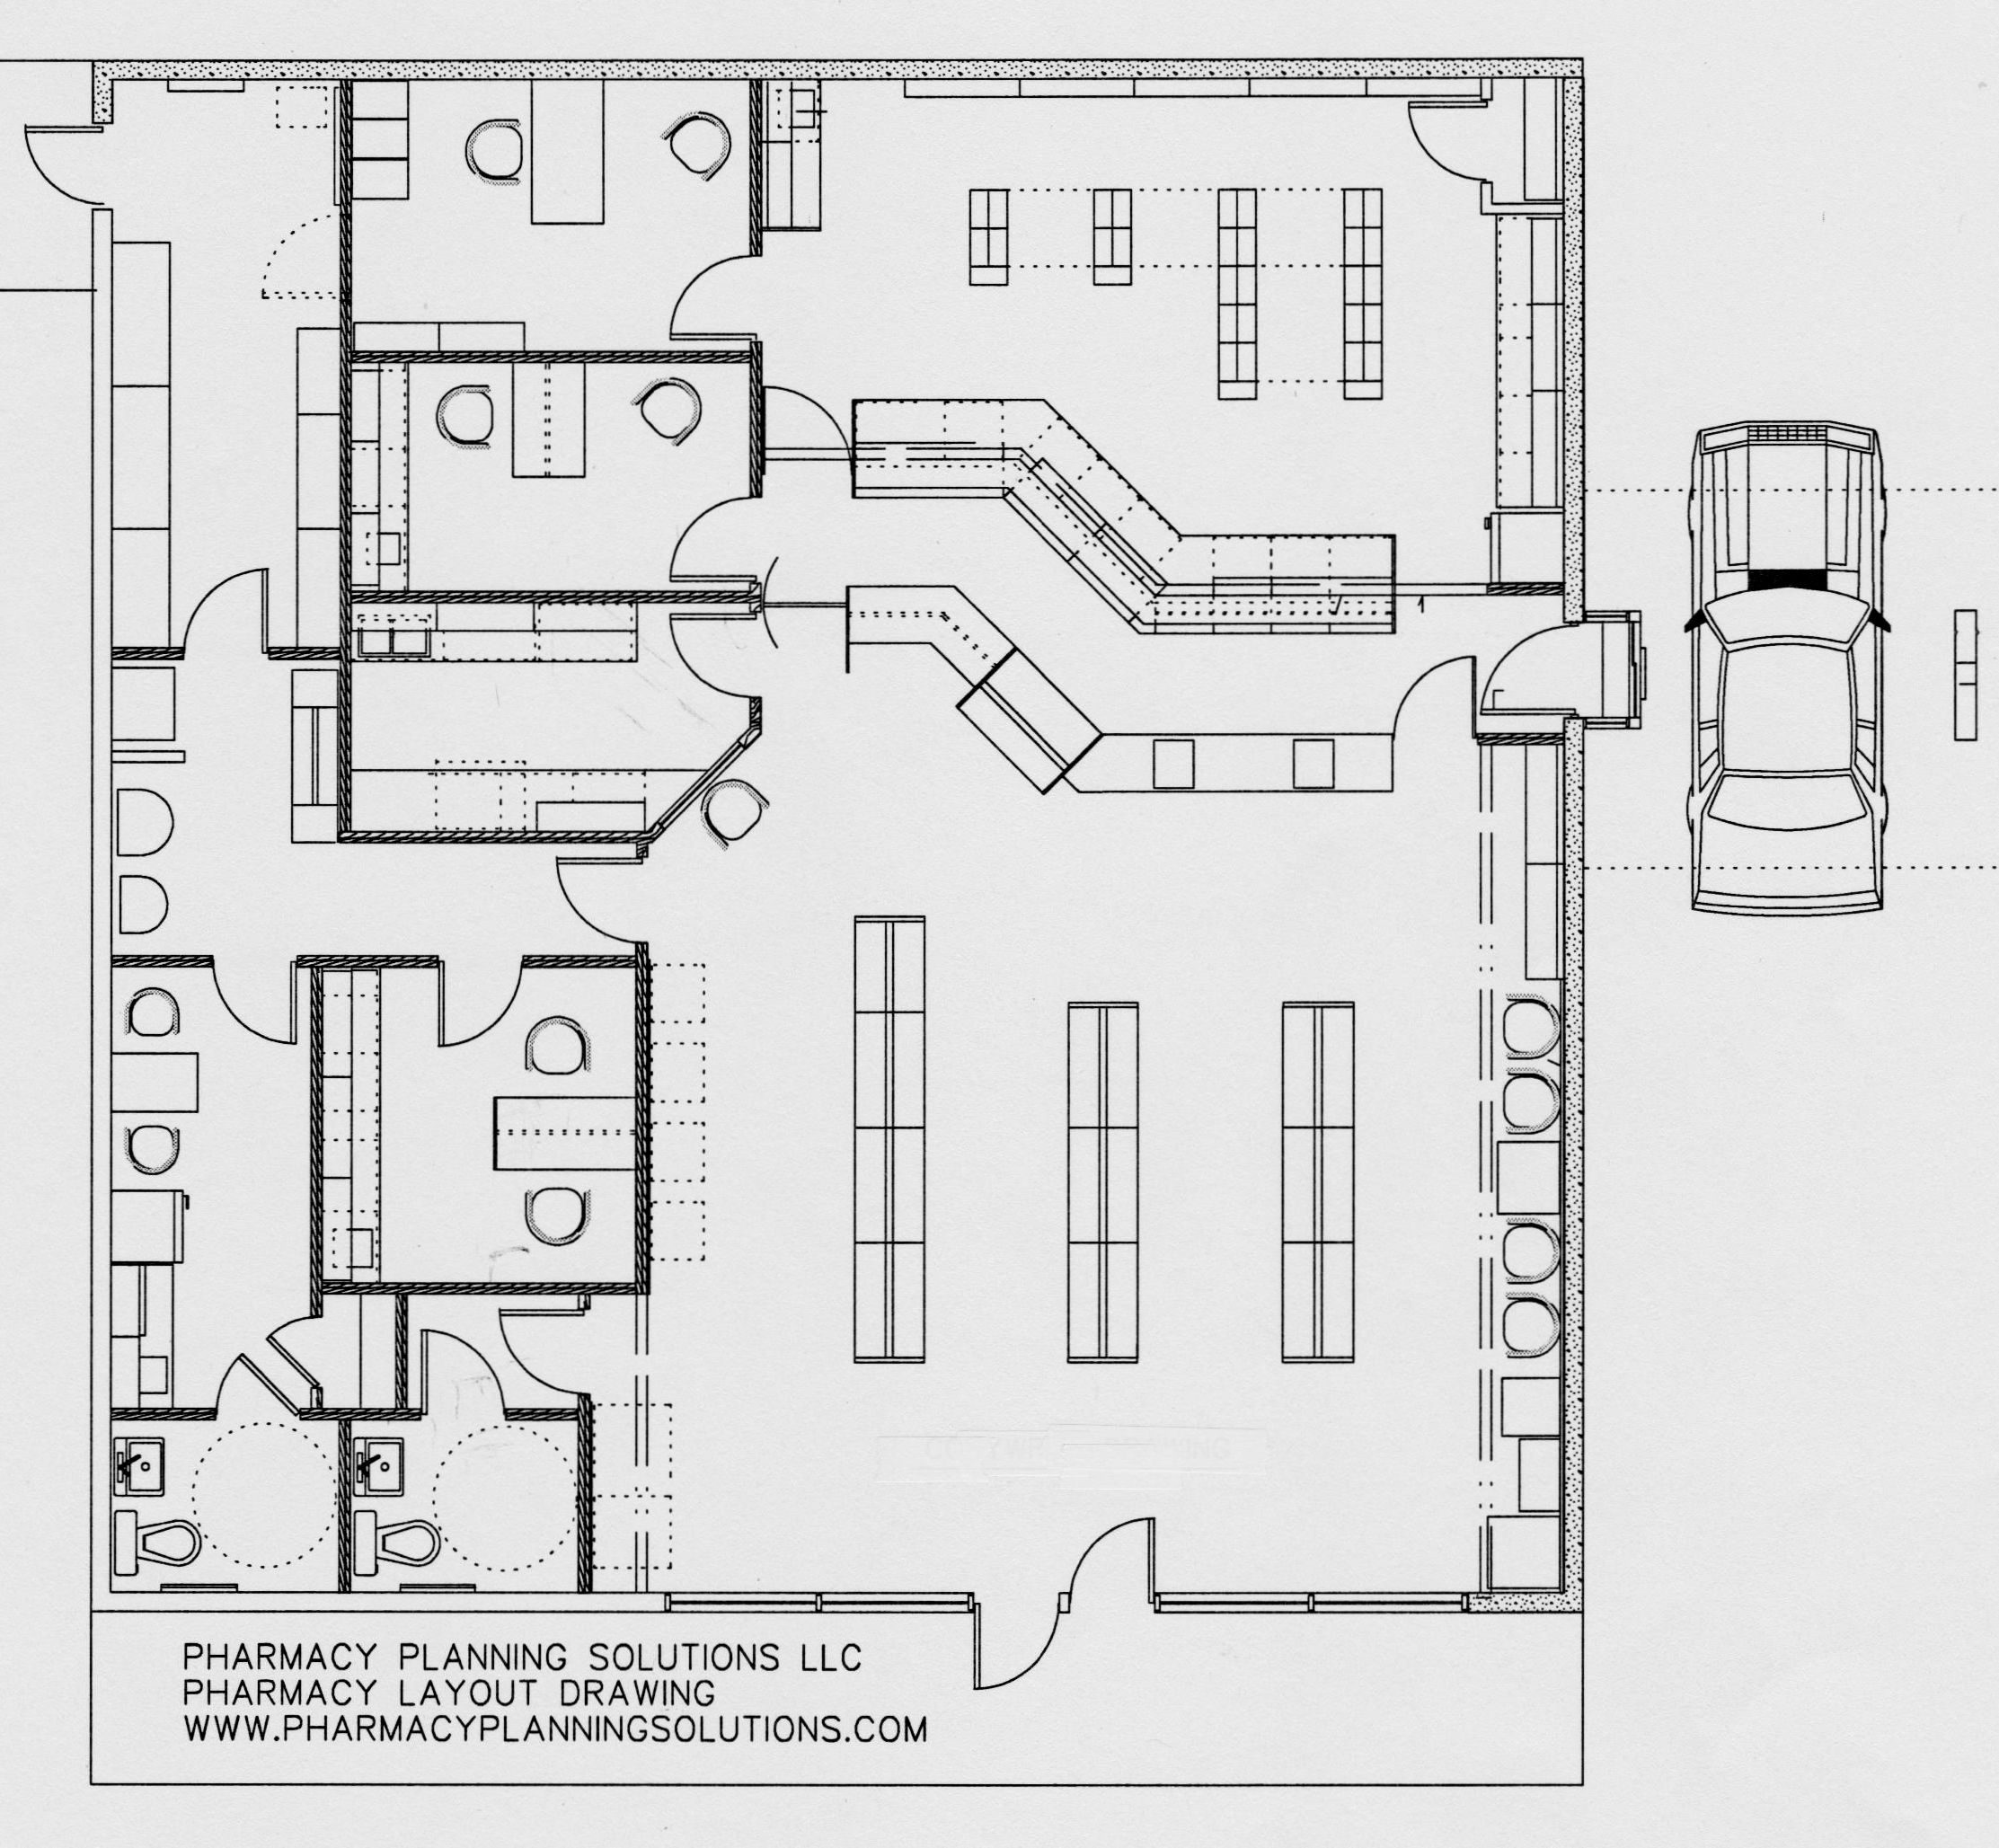 Pharmacy Layout By Pharmacy Planning Solutions Pharmacy Design Store Plan Healthcare Interior Design